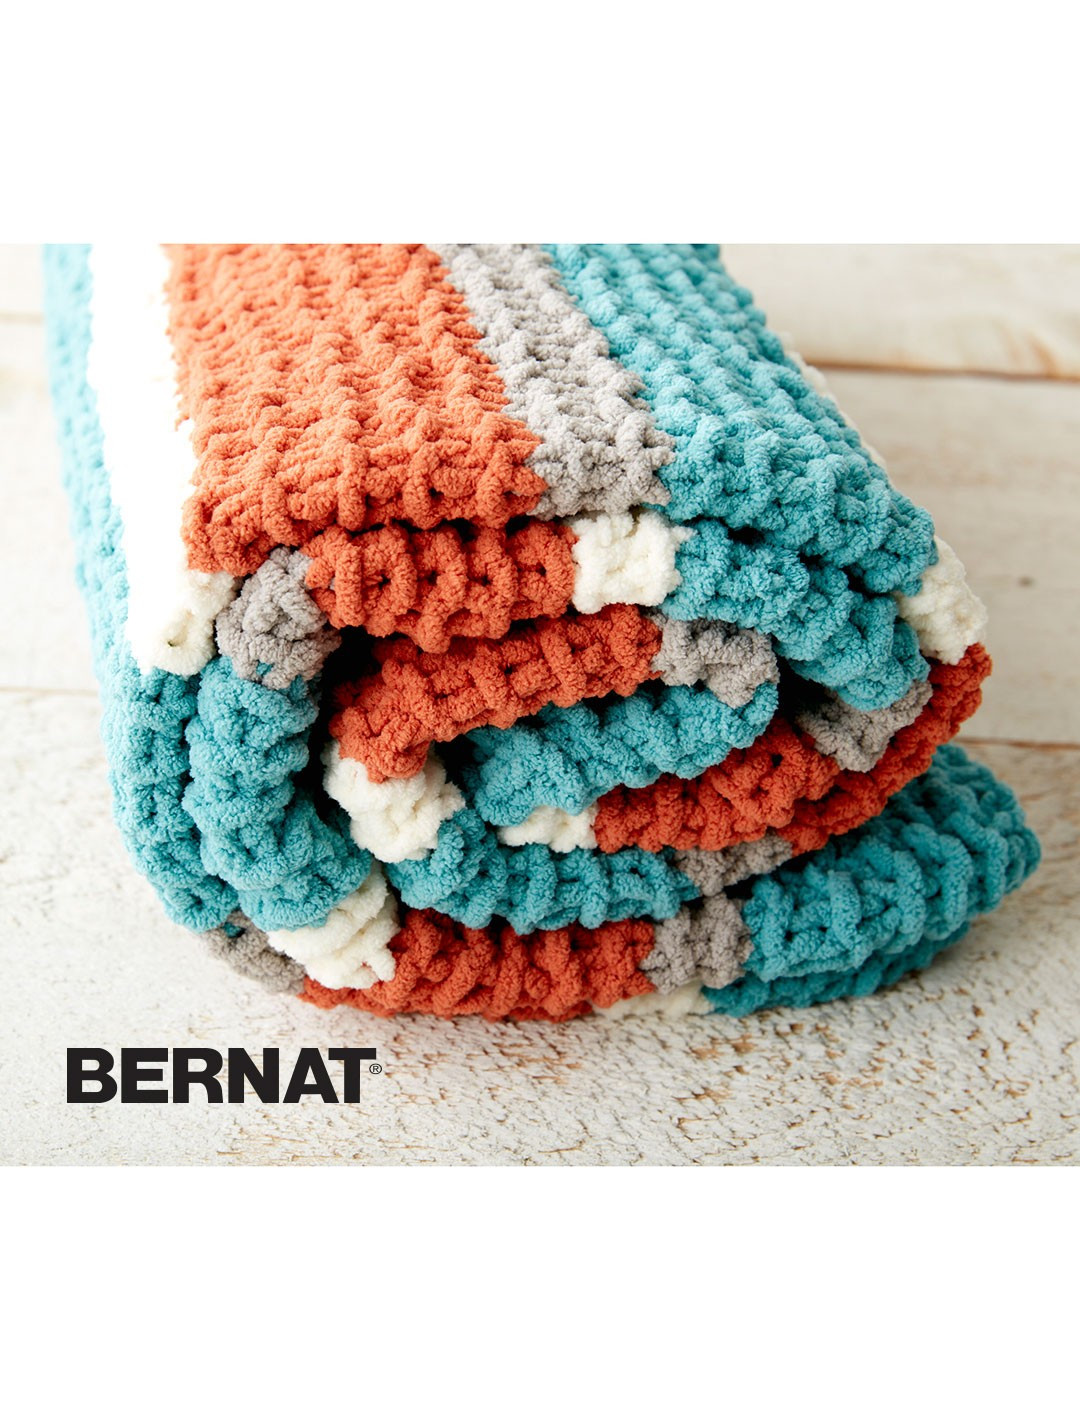 Bernat Crochet Blanket Fresh Bernat Get Fresh Throw Knit Pattern Of Incredible 49 Images Bernat Crochet Blanket